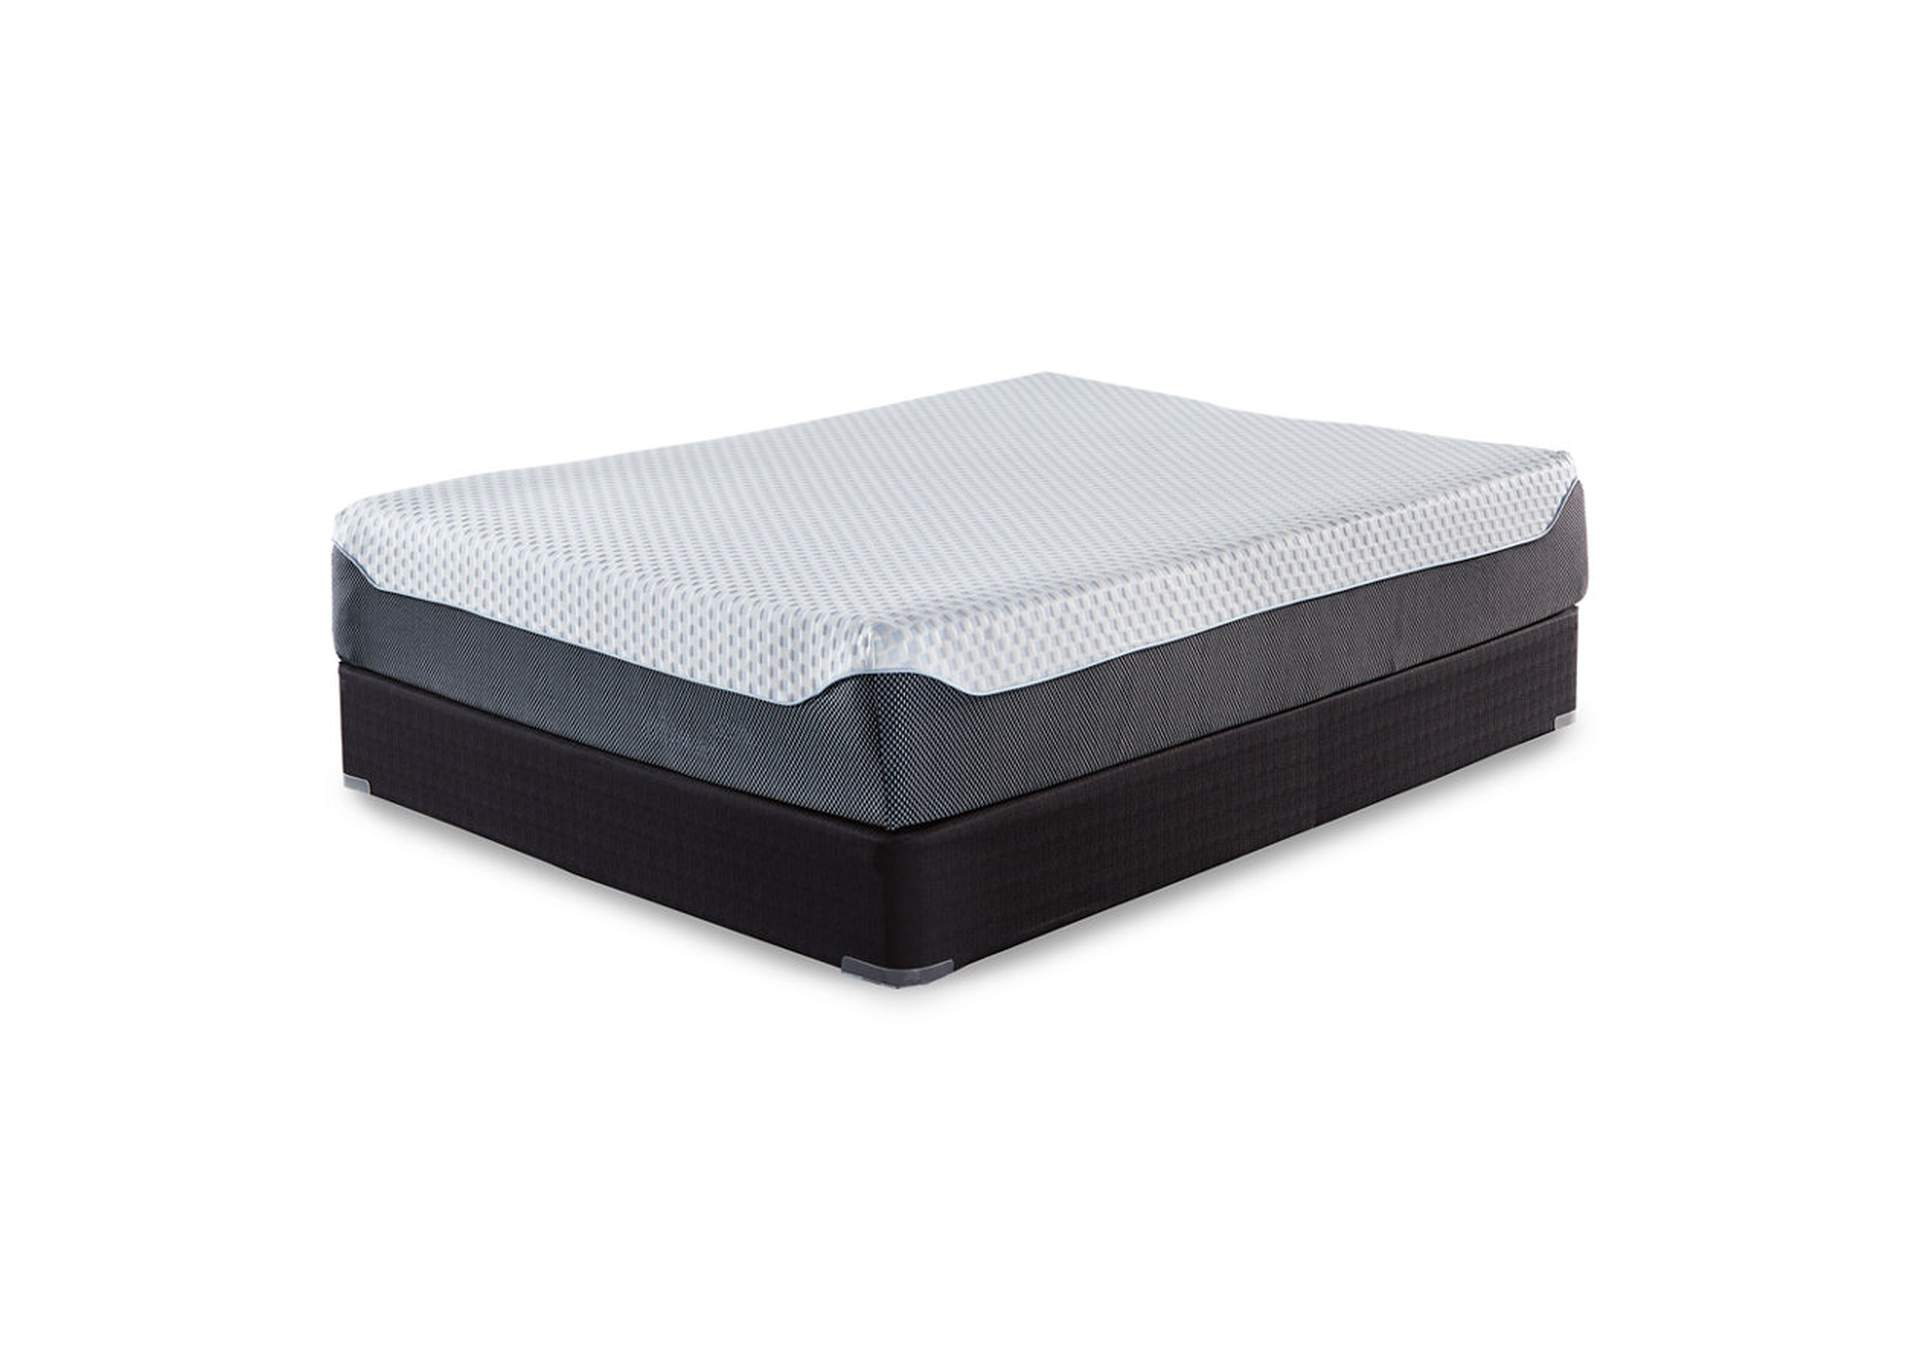 12 Inch Chime Elite King Memory Foam Mattress in a box w/Foundation,Sierra Sleep by Ashley